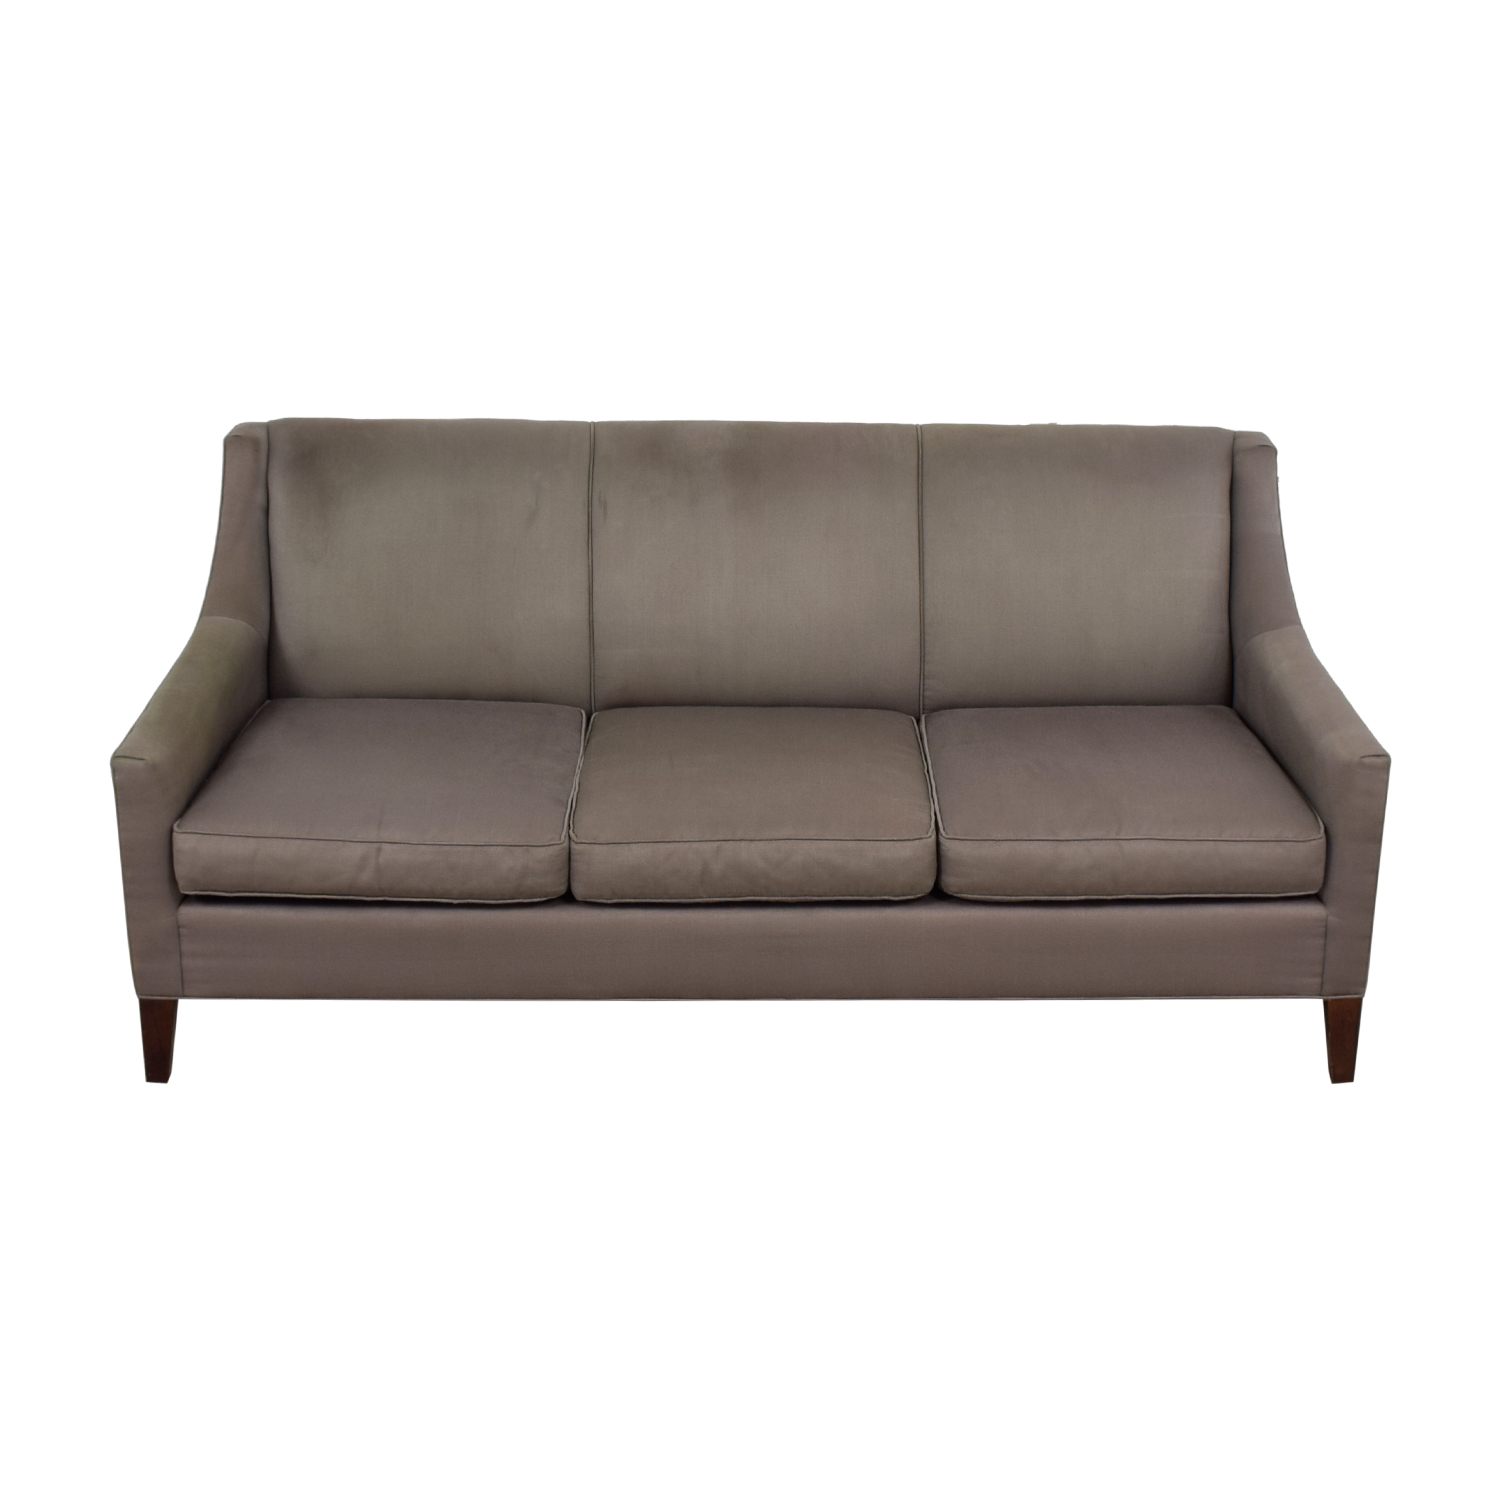 Mitchell Gold & Bob Williams Mitchell Gold & Bob Williams Cara Grey Three-Cushion Sofa dimensions